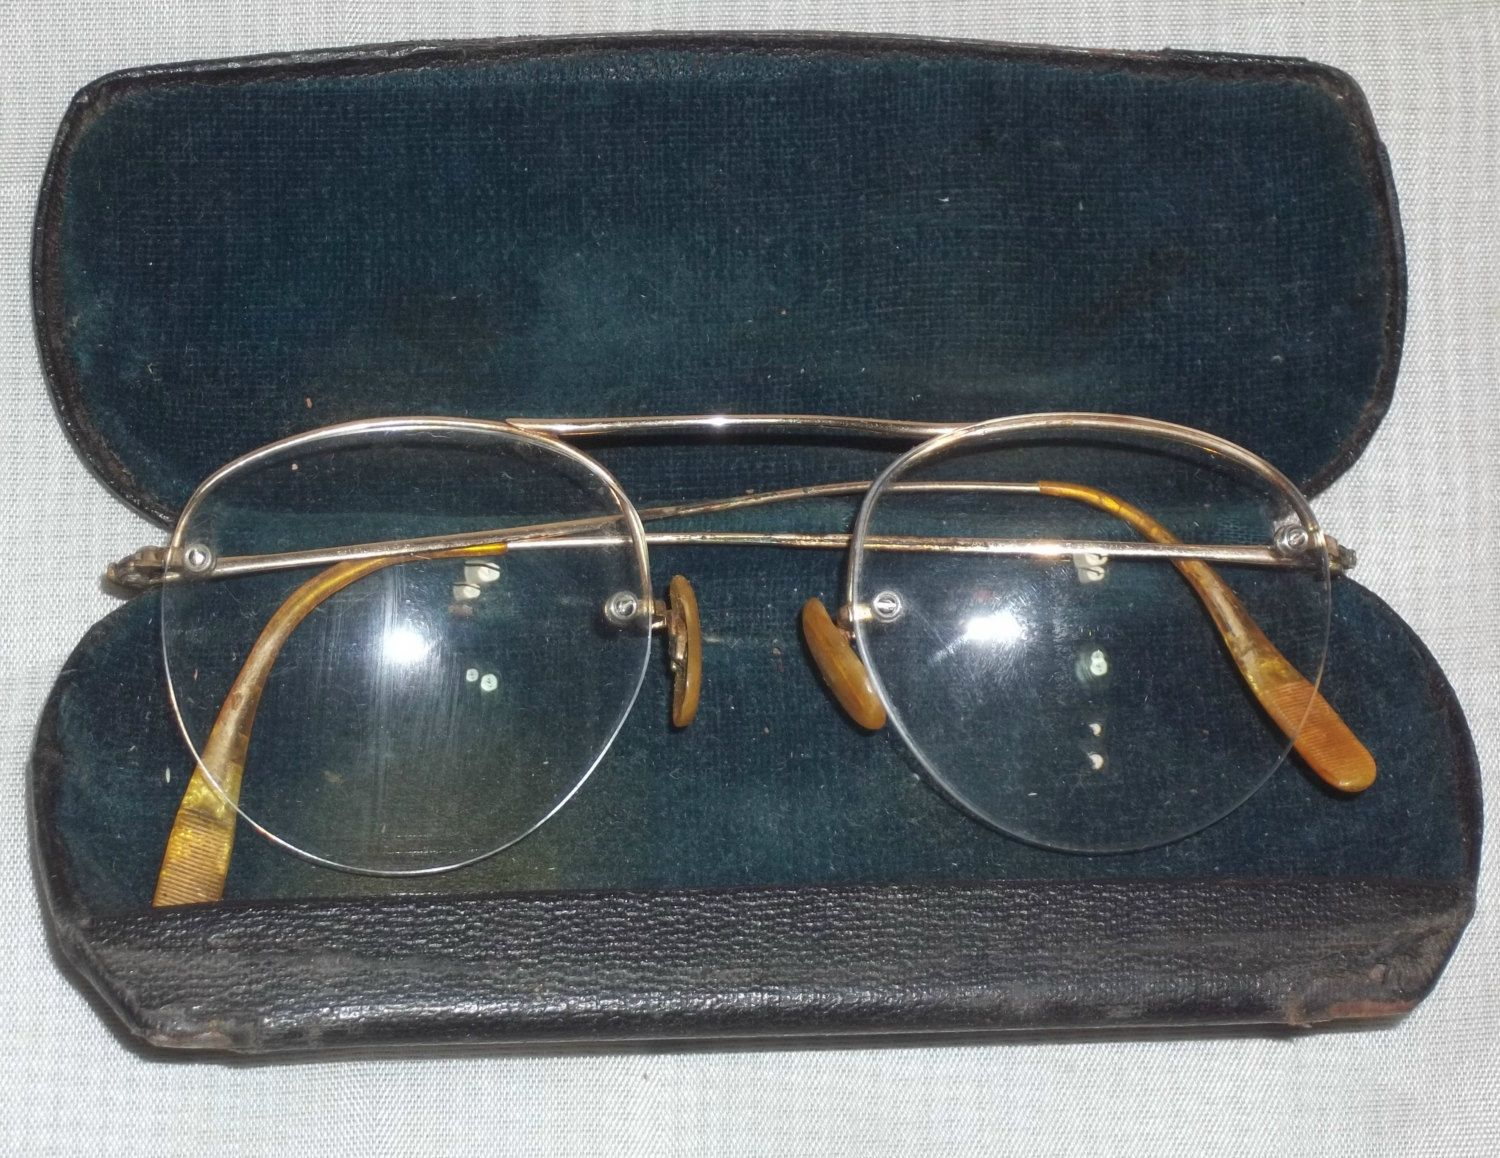 3e2b15b8258 Vintage Shuron Aviator Ful-Vue Eyeglasses 1 10 12k Gold Filled Frames  Spectacles Eye Glasses by ShonnasVintage on Etsy